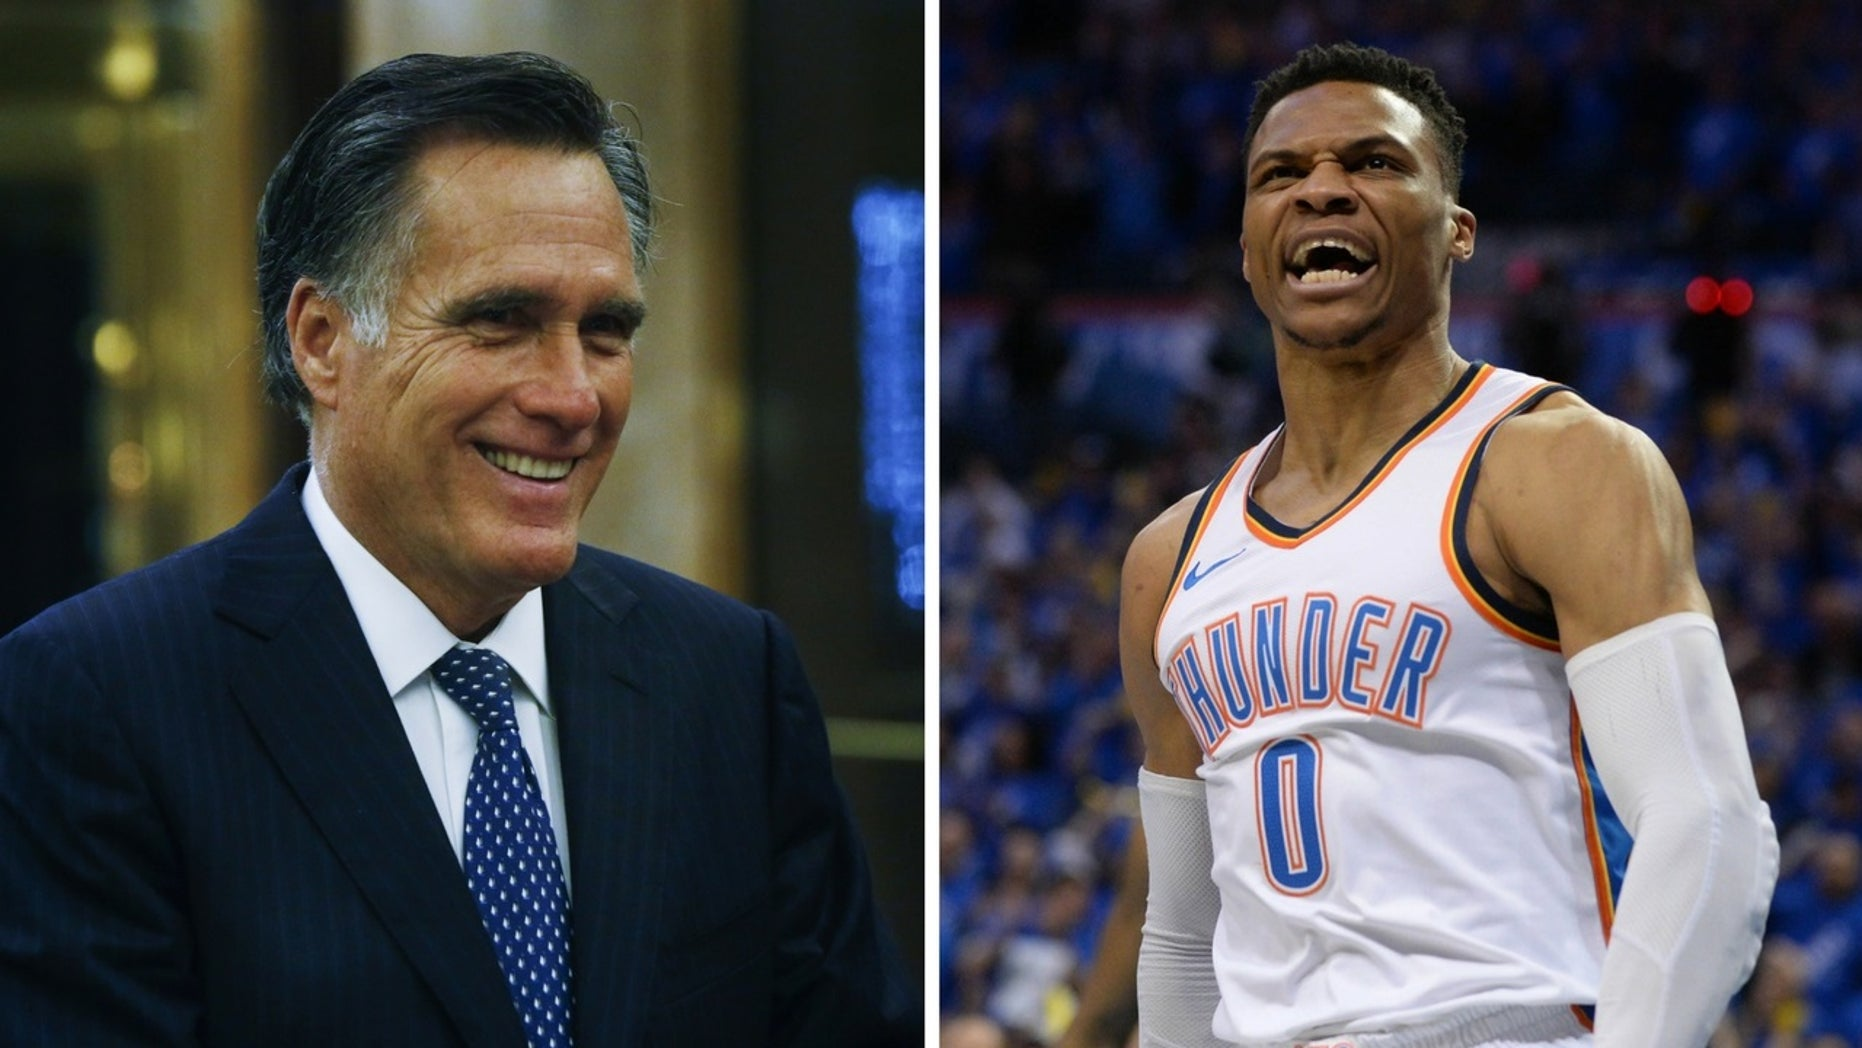 Mitt Romney was spotted at the Utah vs. Thunder game and taunted NBA star Russell Westbrook when he received his fourth foul call.